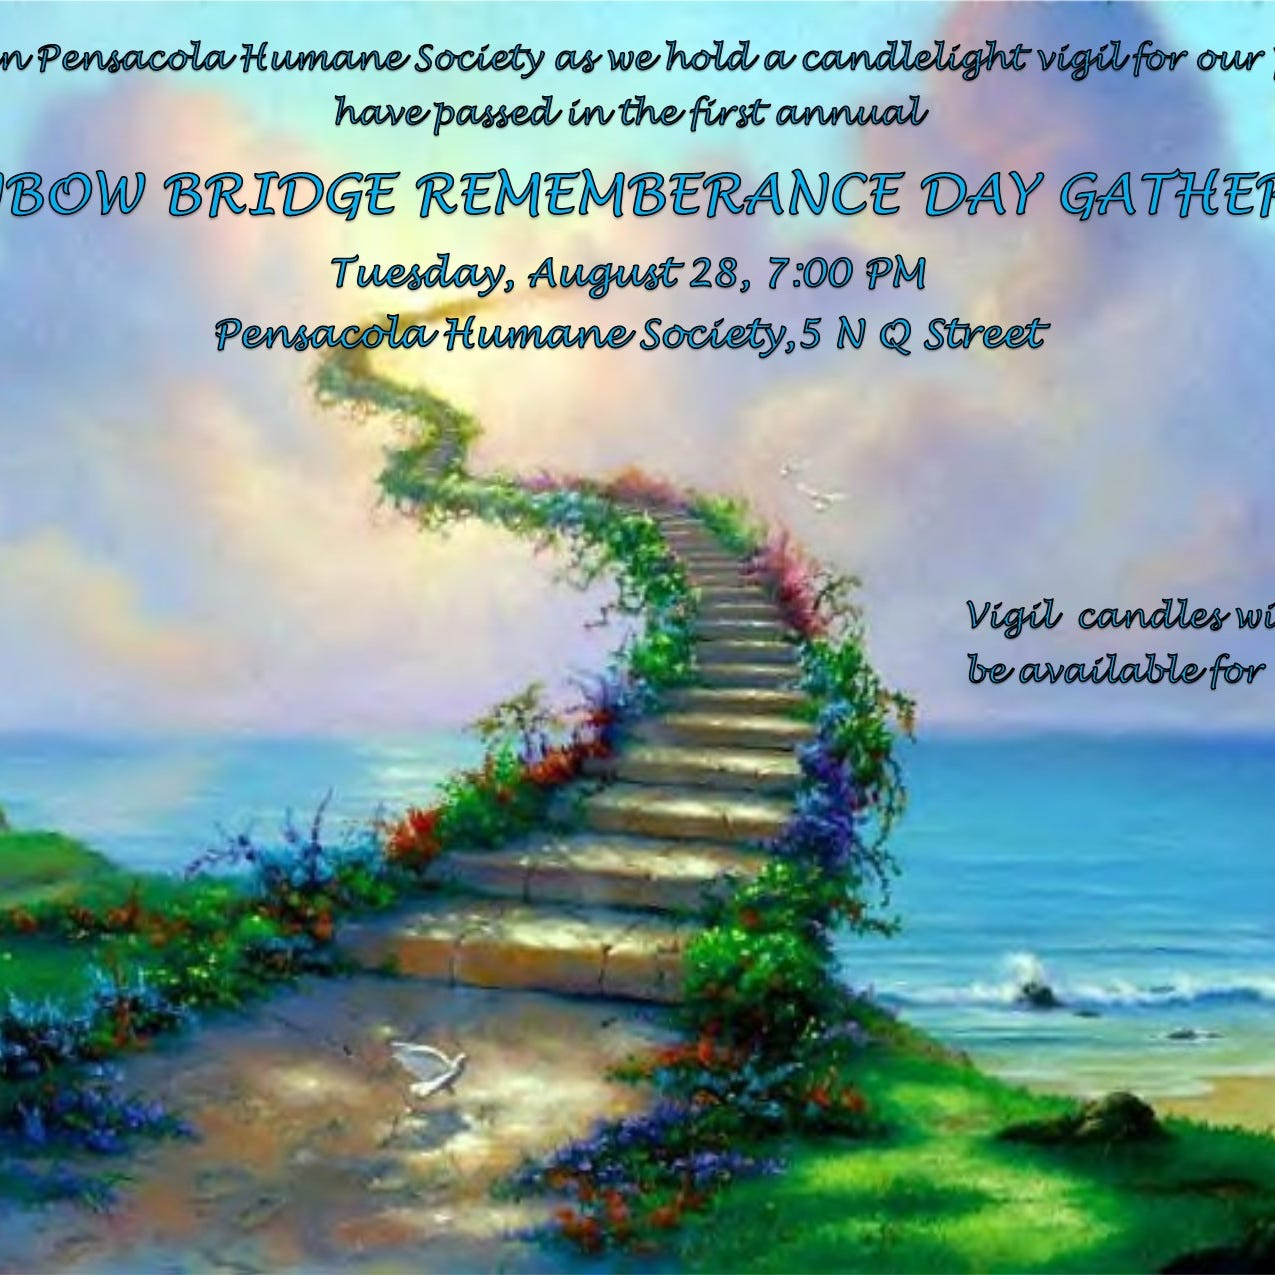 Rainbow Bridge Remembrance Day Gathering offers pet owners a chance to honor lost pets